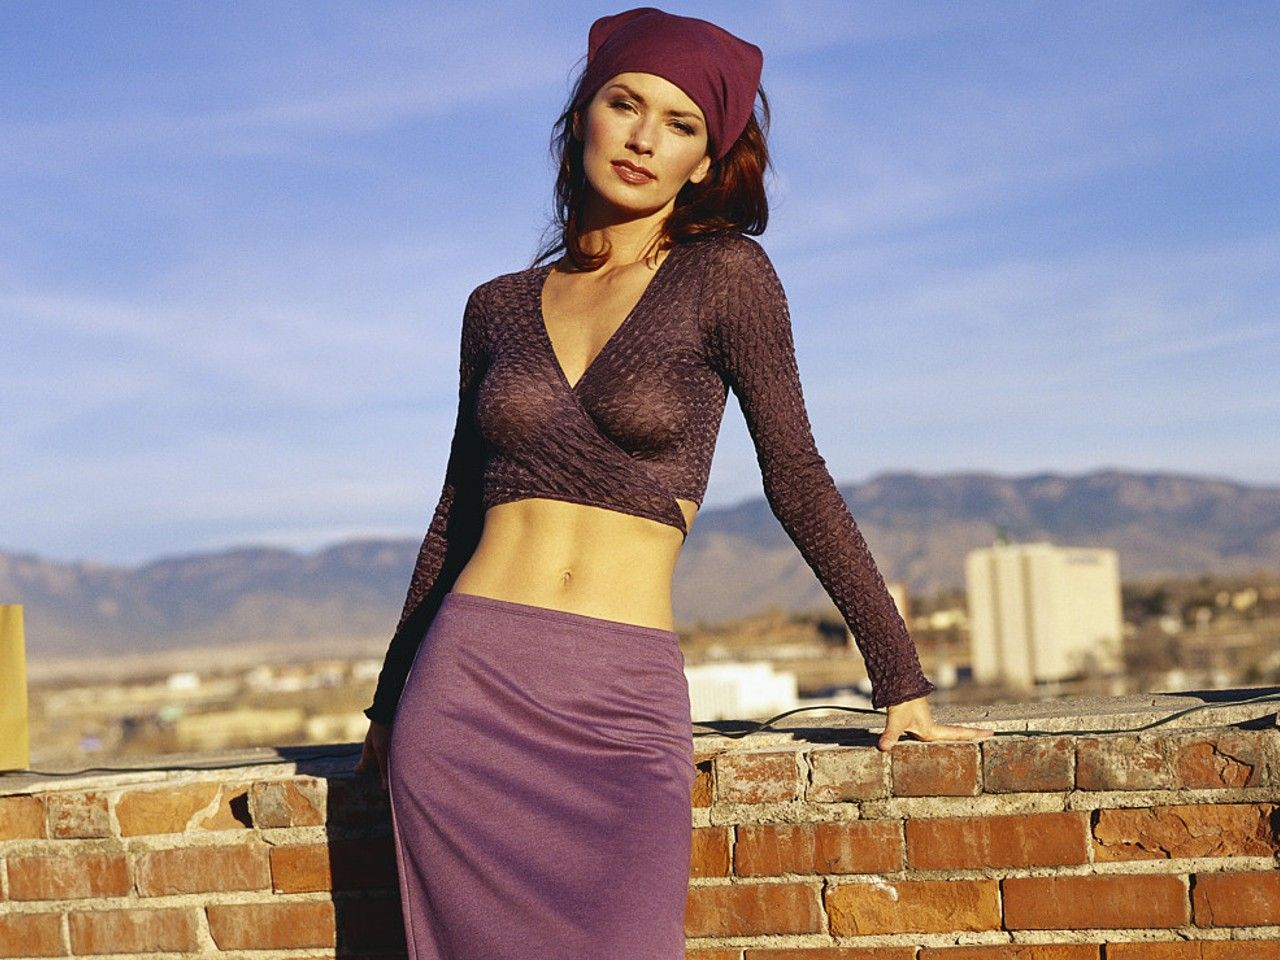 Shania Twain Picture - Image 17